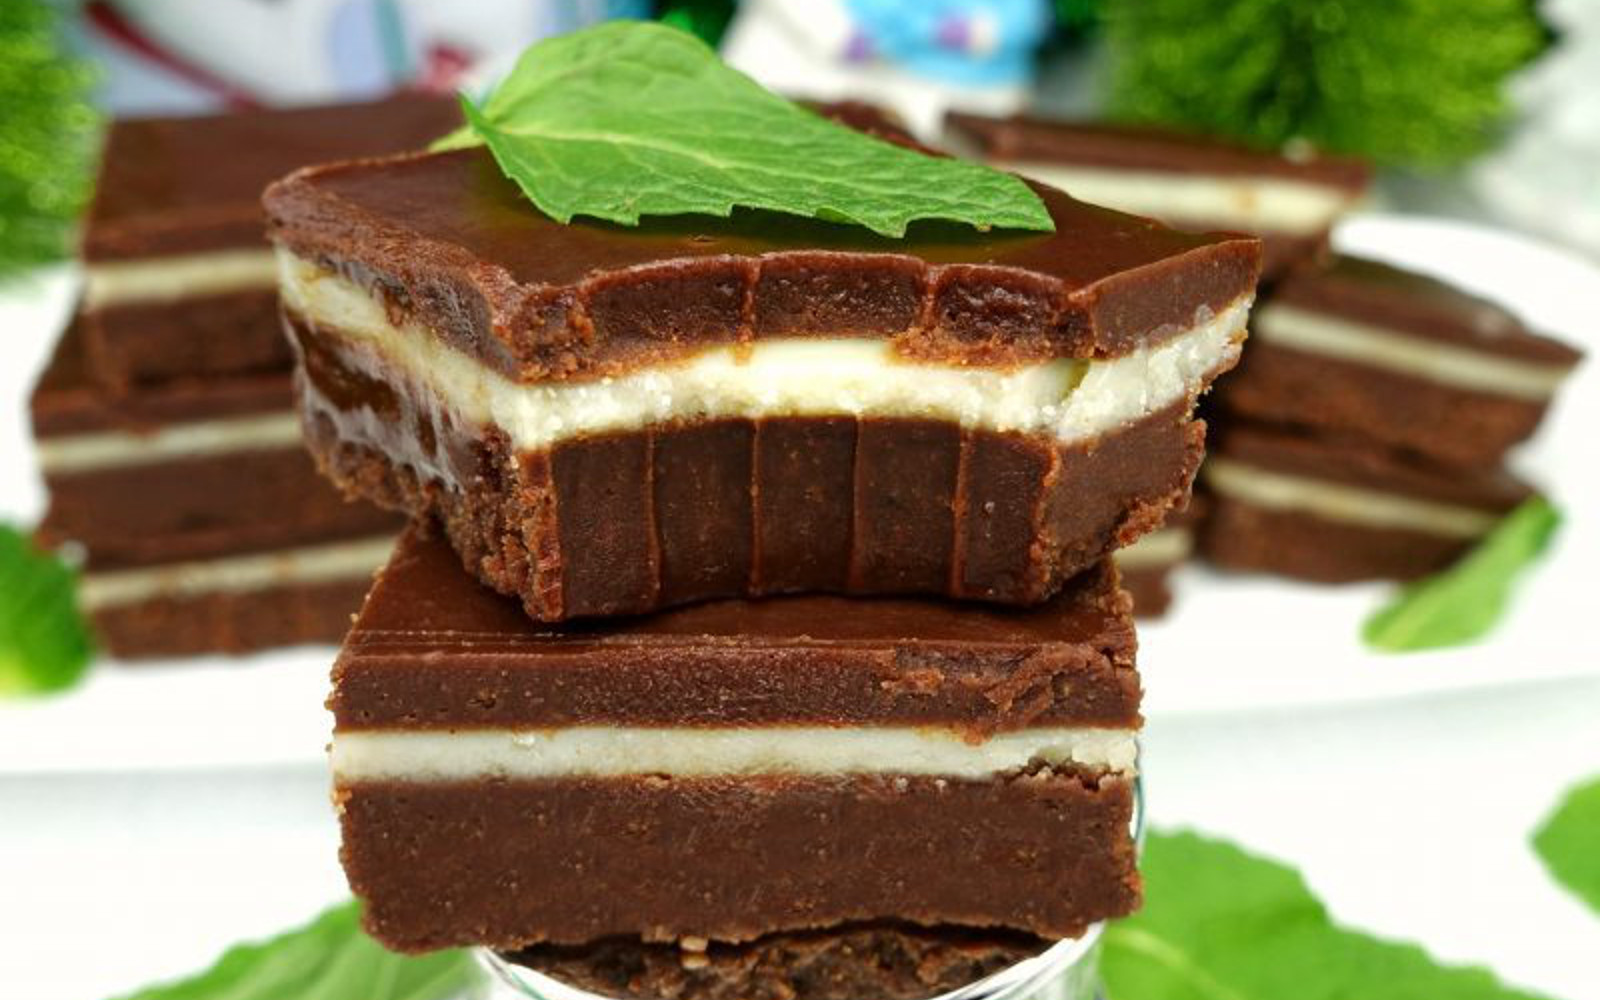 Vegan Paleo, Gluten-Free Dark Chocolate Andes Mint Fudge topped with fresh mint